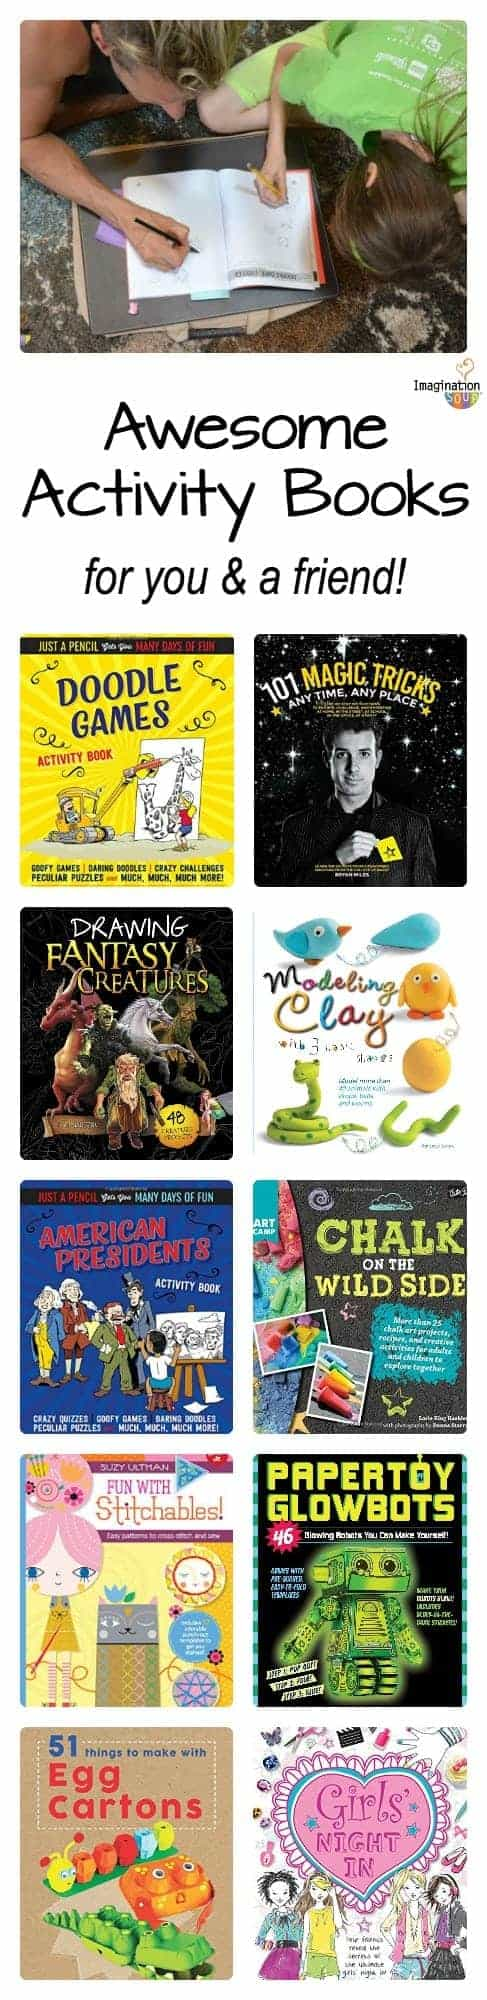 Awesome Activity Books Crafts, Magic, Drawing, and More